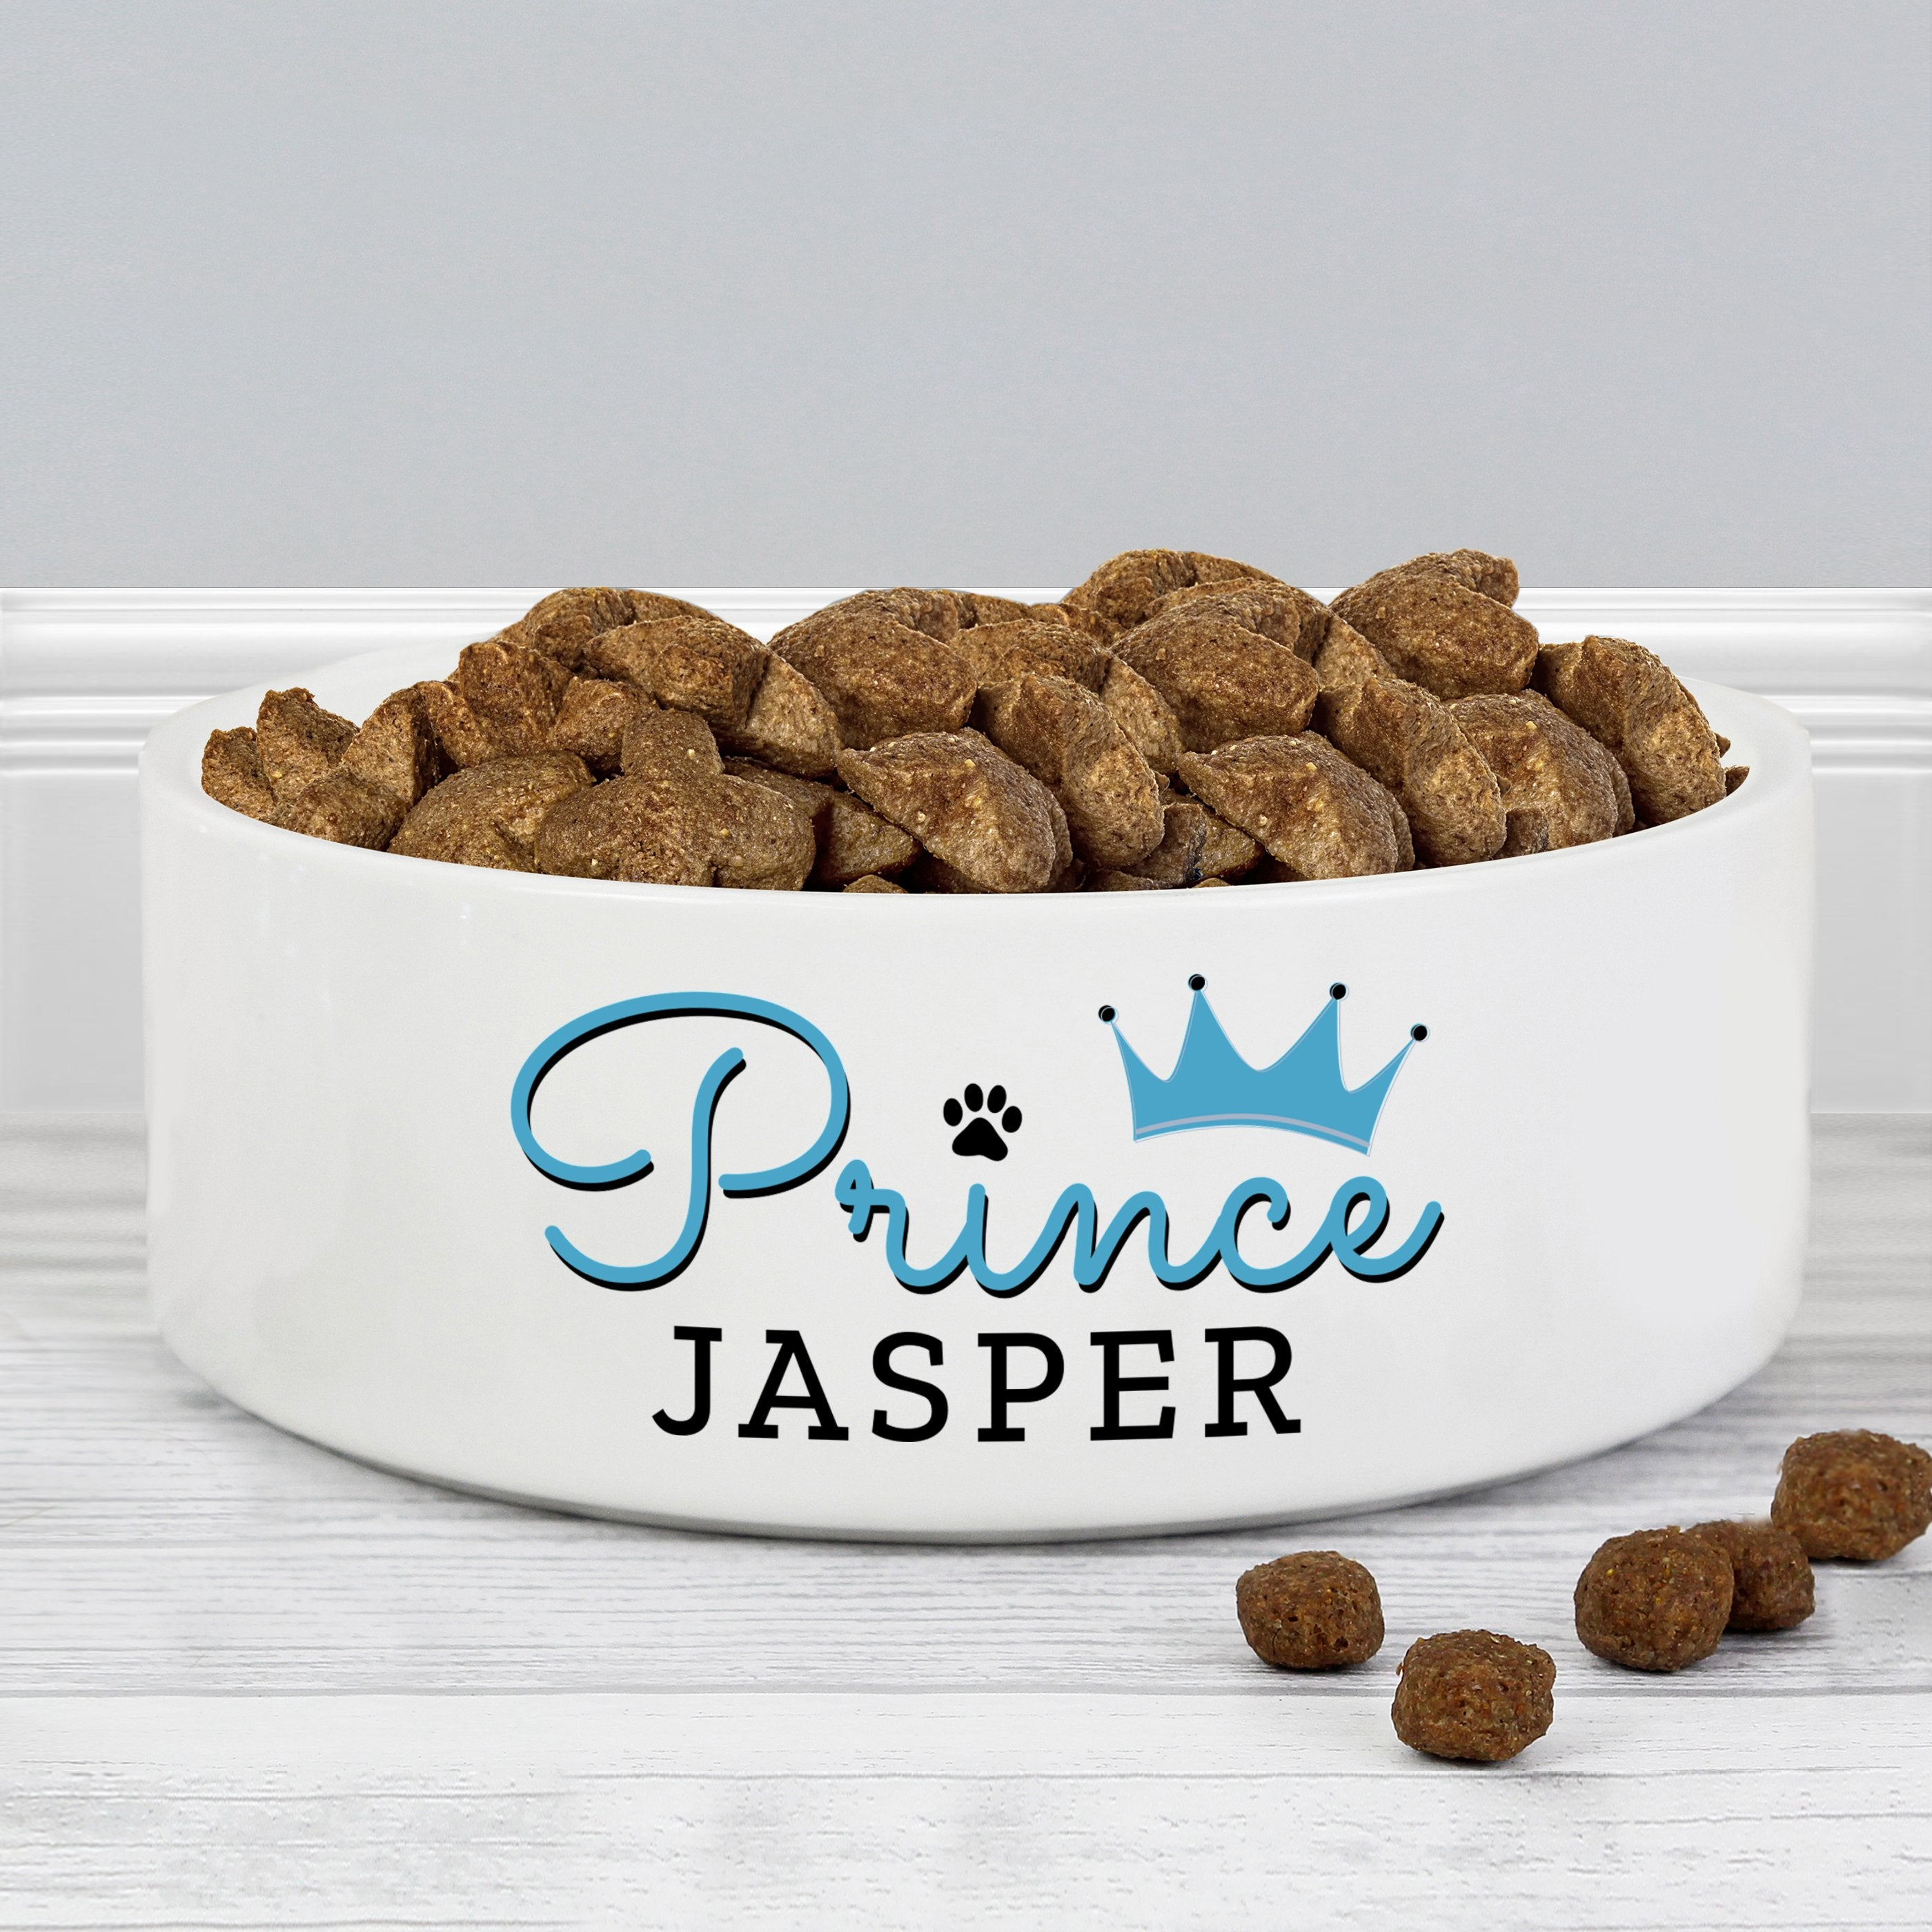 Personalised Prince 14cm Medium Ceramic White Pet Bowl - Shop Personalised Gifts (4814791475286)